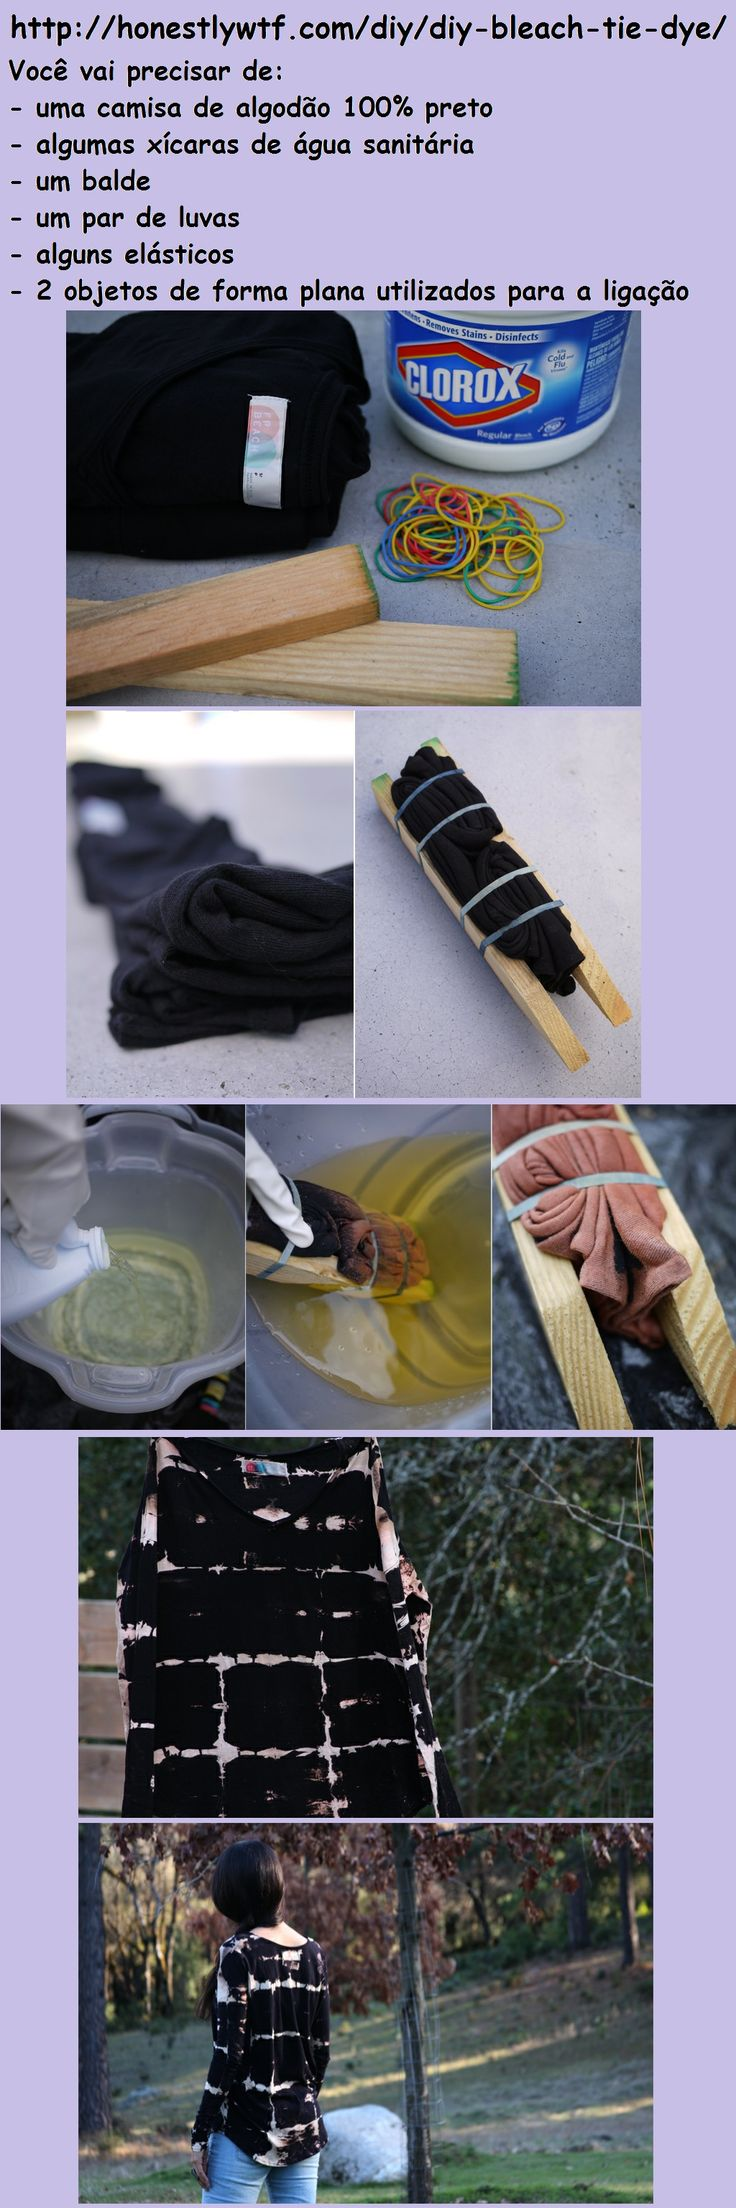 Encontrado em : http://honestlywtf.com/diy/diy-bleach-tie-dye/. In the web site it is English